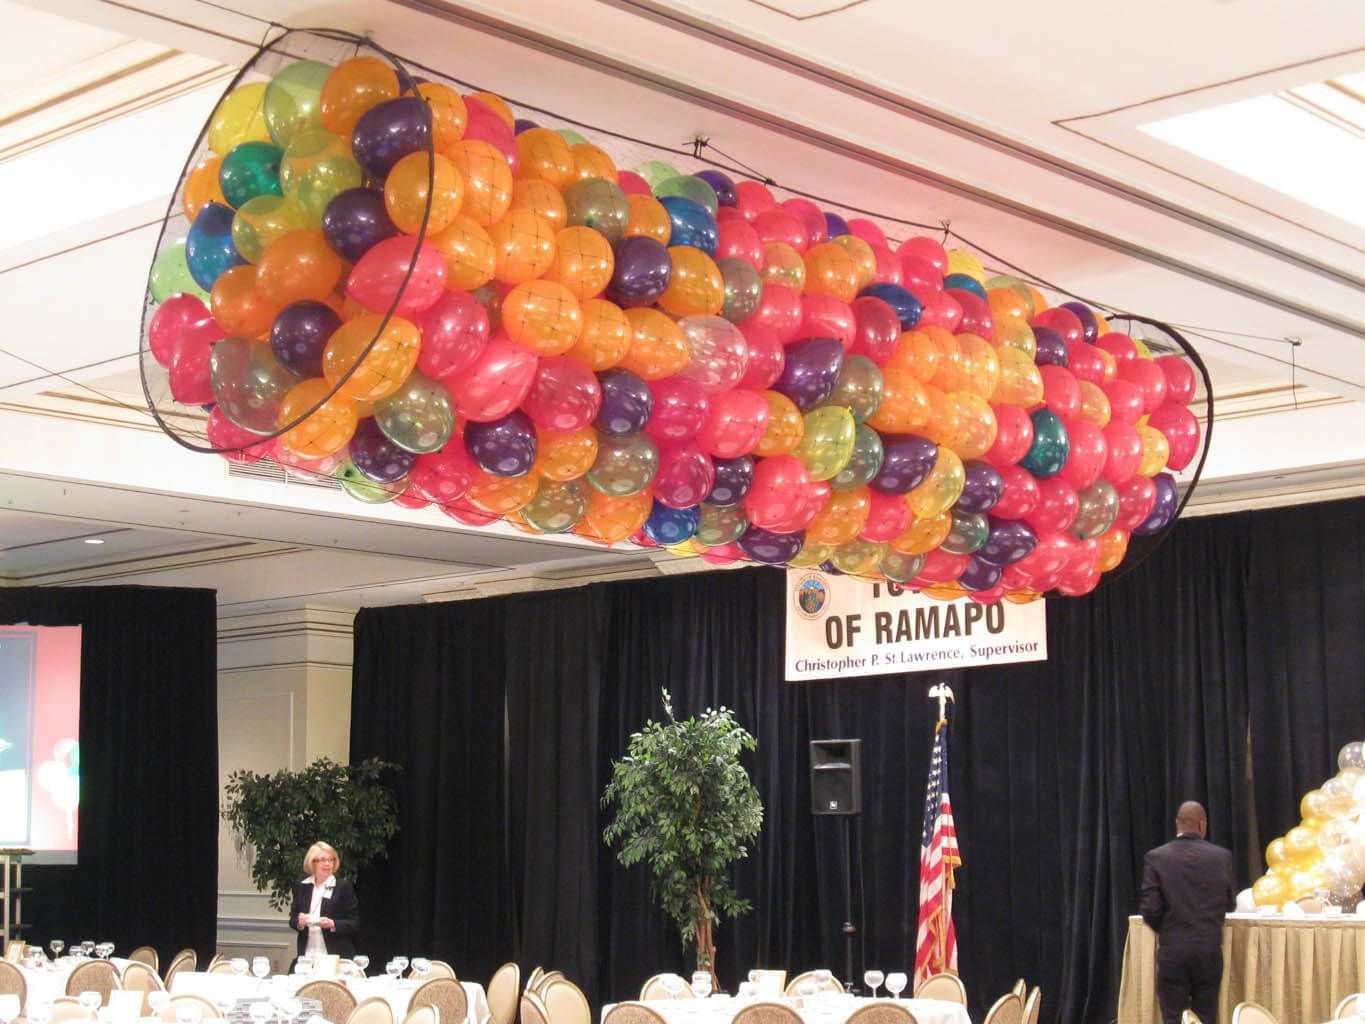 Balloon Net Drop Balloon Net Drop over Dance Floor | Balloon drops ...